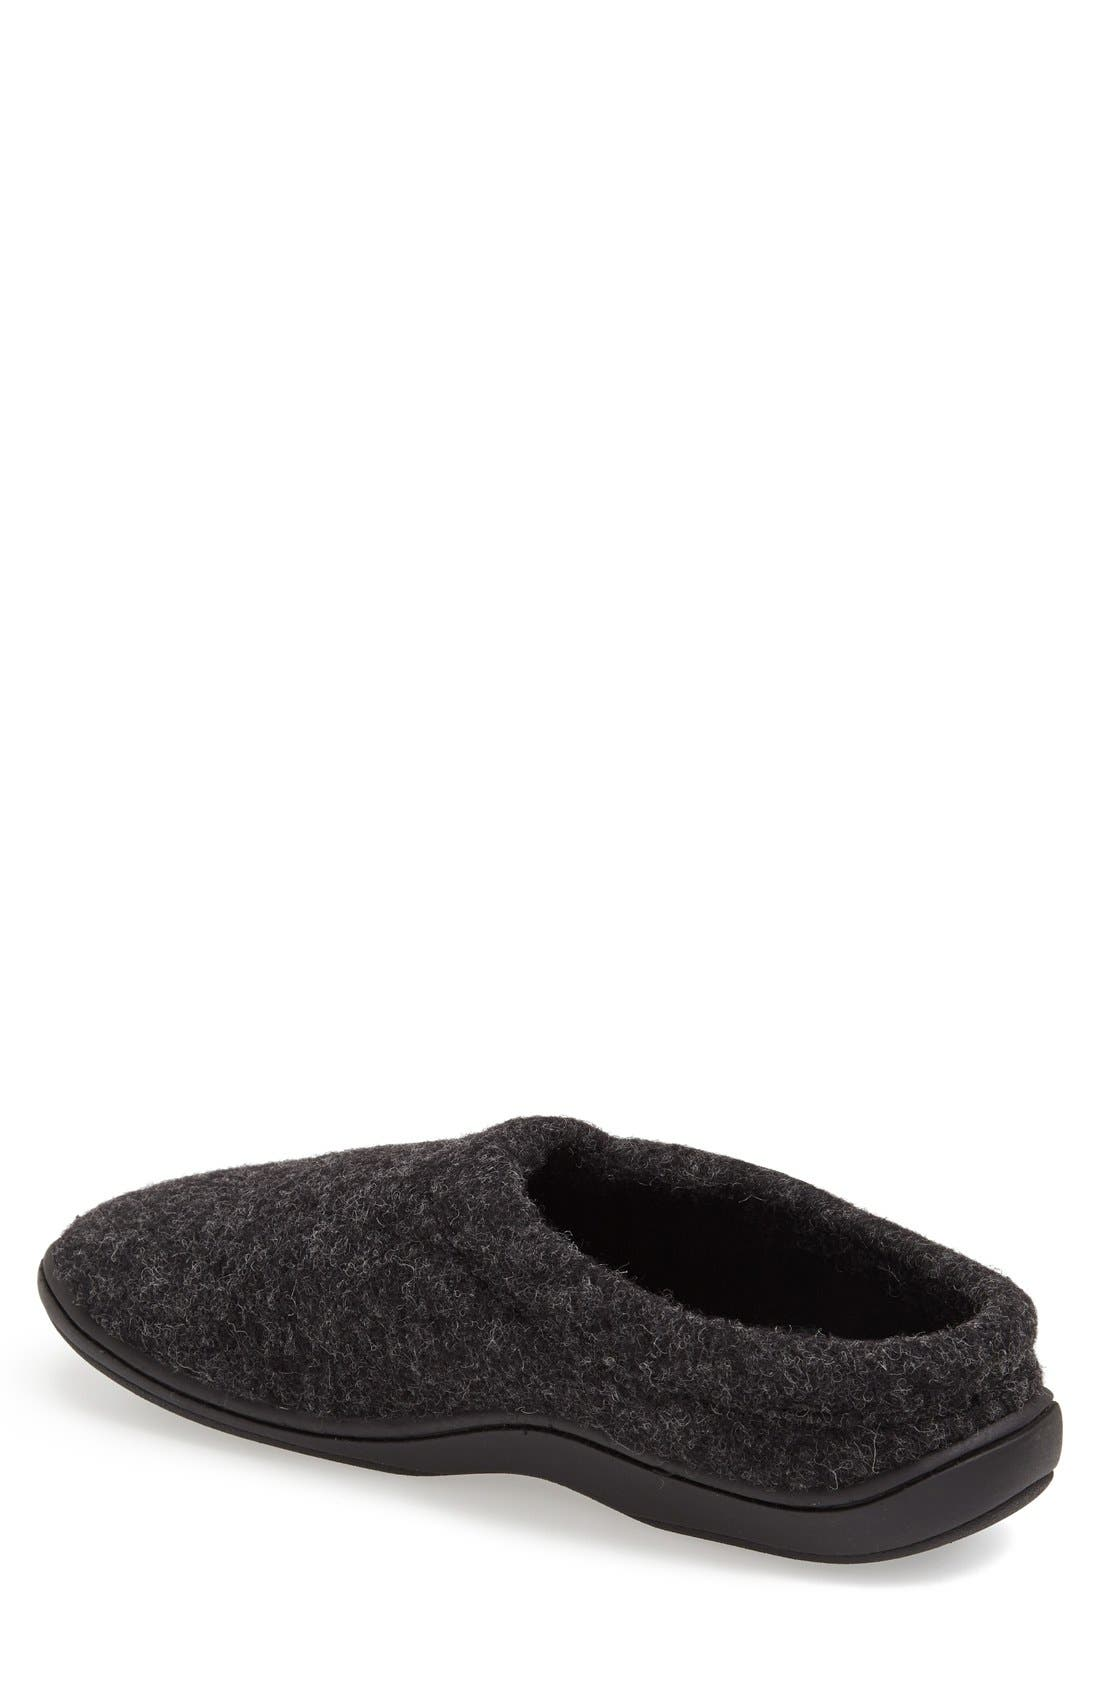 'Digby' Slipper,                             Alternate thumbnail 11, color,